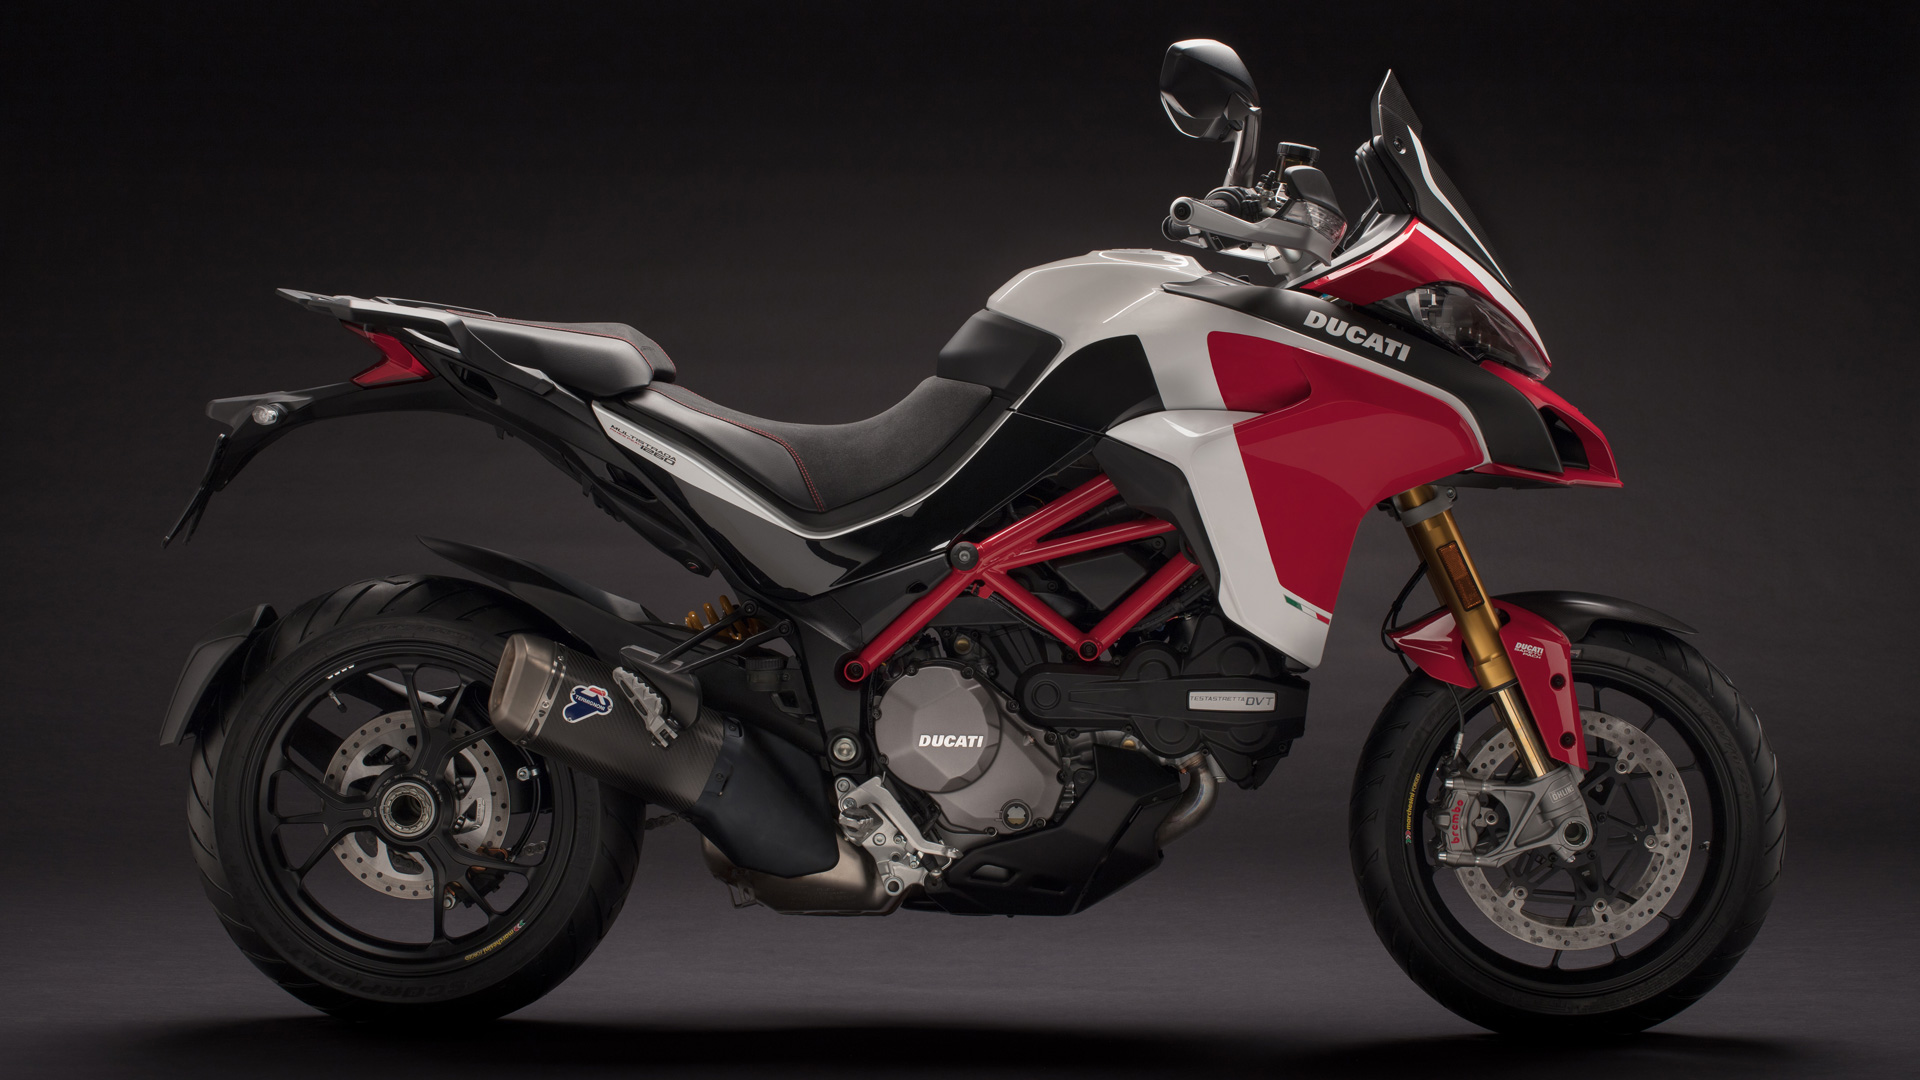 Multistrada 1000 Wiring Diagram Site Www Ducati Ms Free Download 851 1260 Expand Your Comfort Zone At